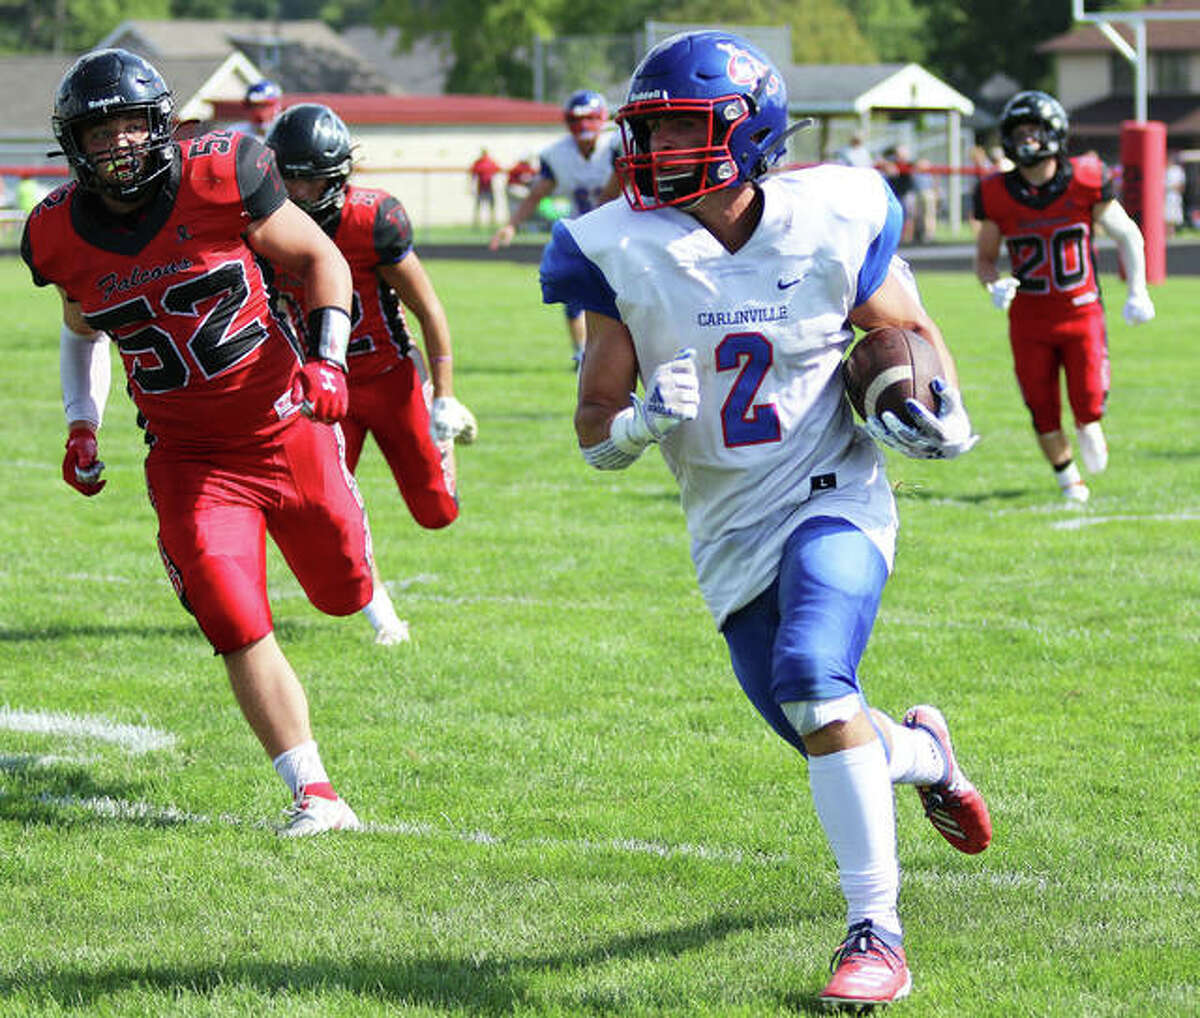 Carlinville's Carson Wiser (2) runs free for some of his 202 receiving yards from a school-record 13 catches while Gibson City's Brandon Mueller (52) gives chase on Saturday afternoon in Gibson City.